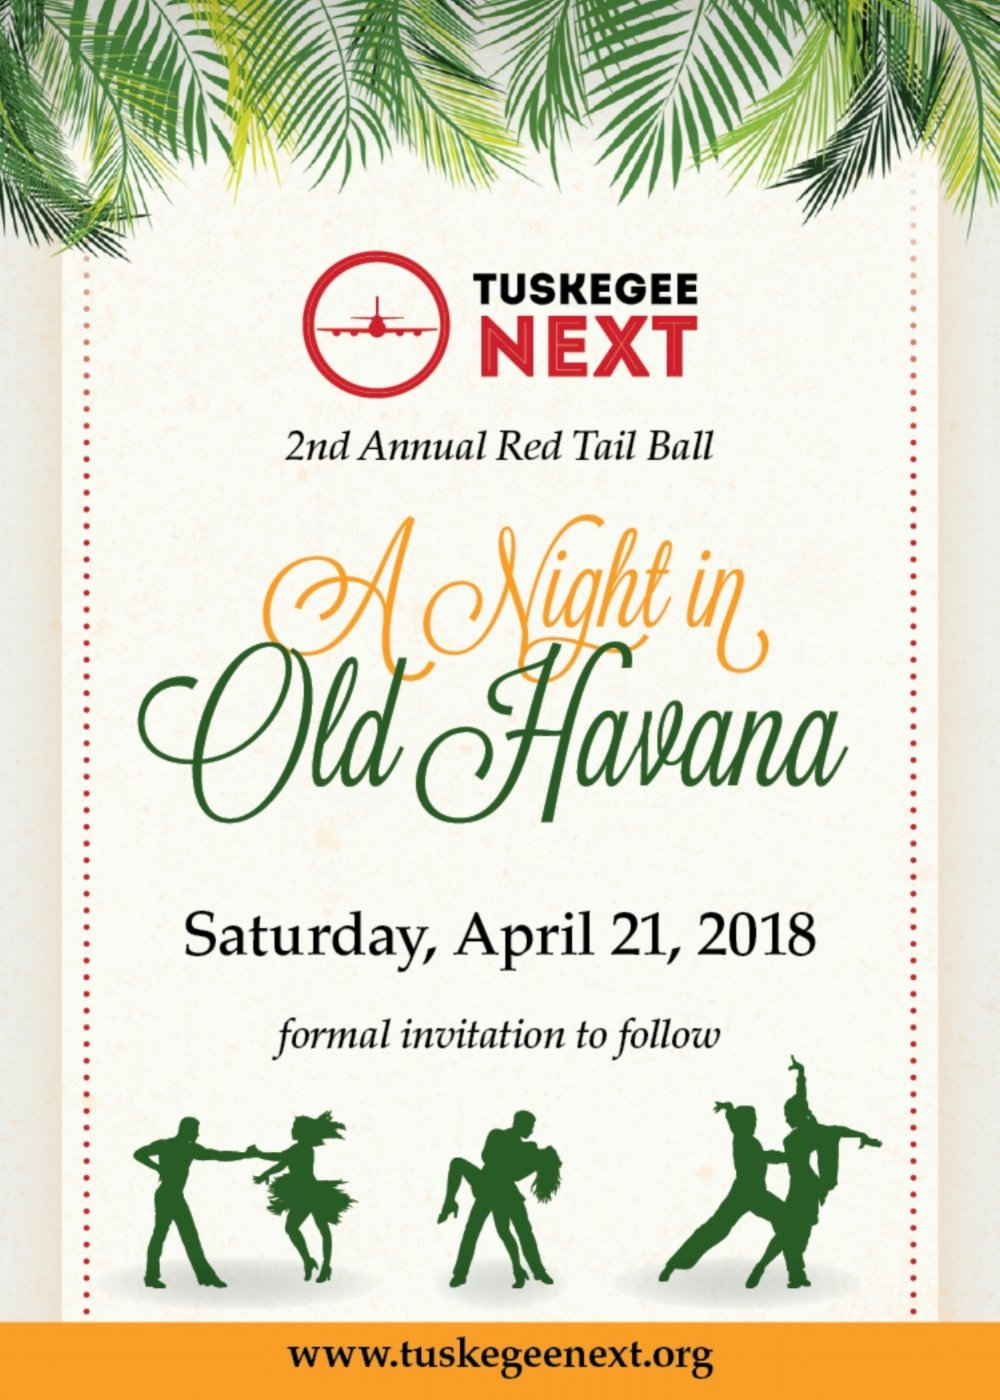 Tuskegee Next, Havana Invitations 1-18.jpg